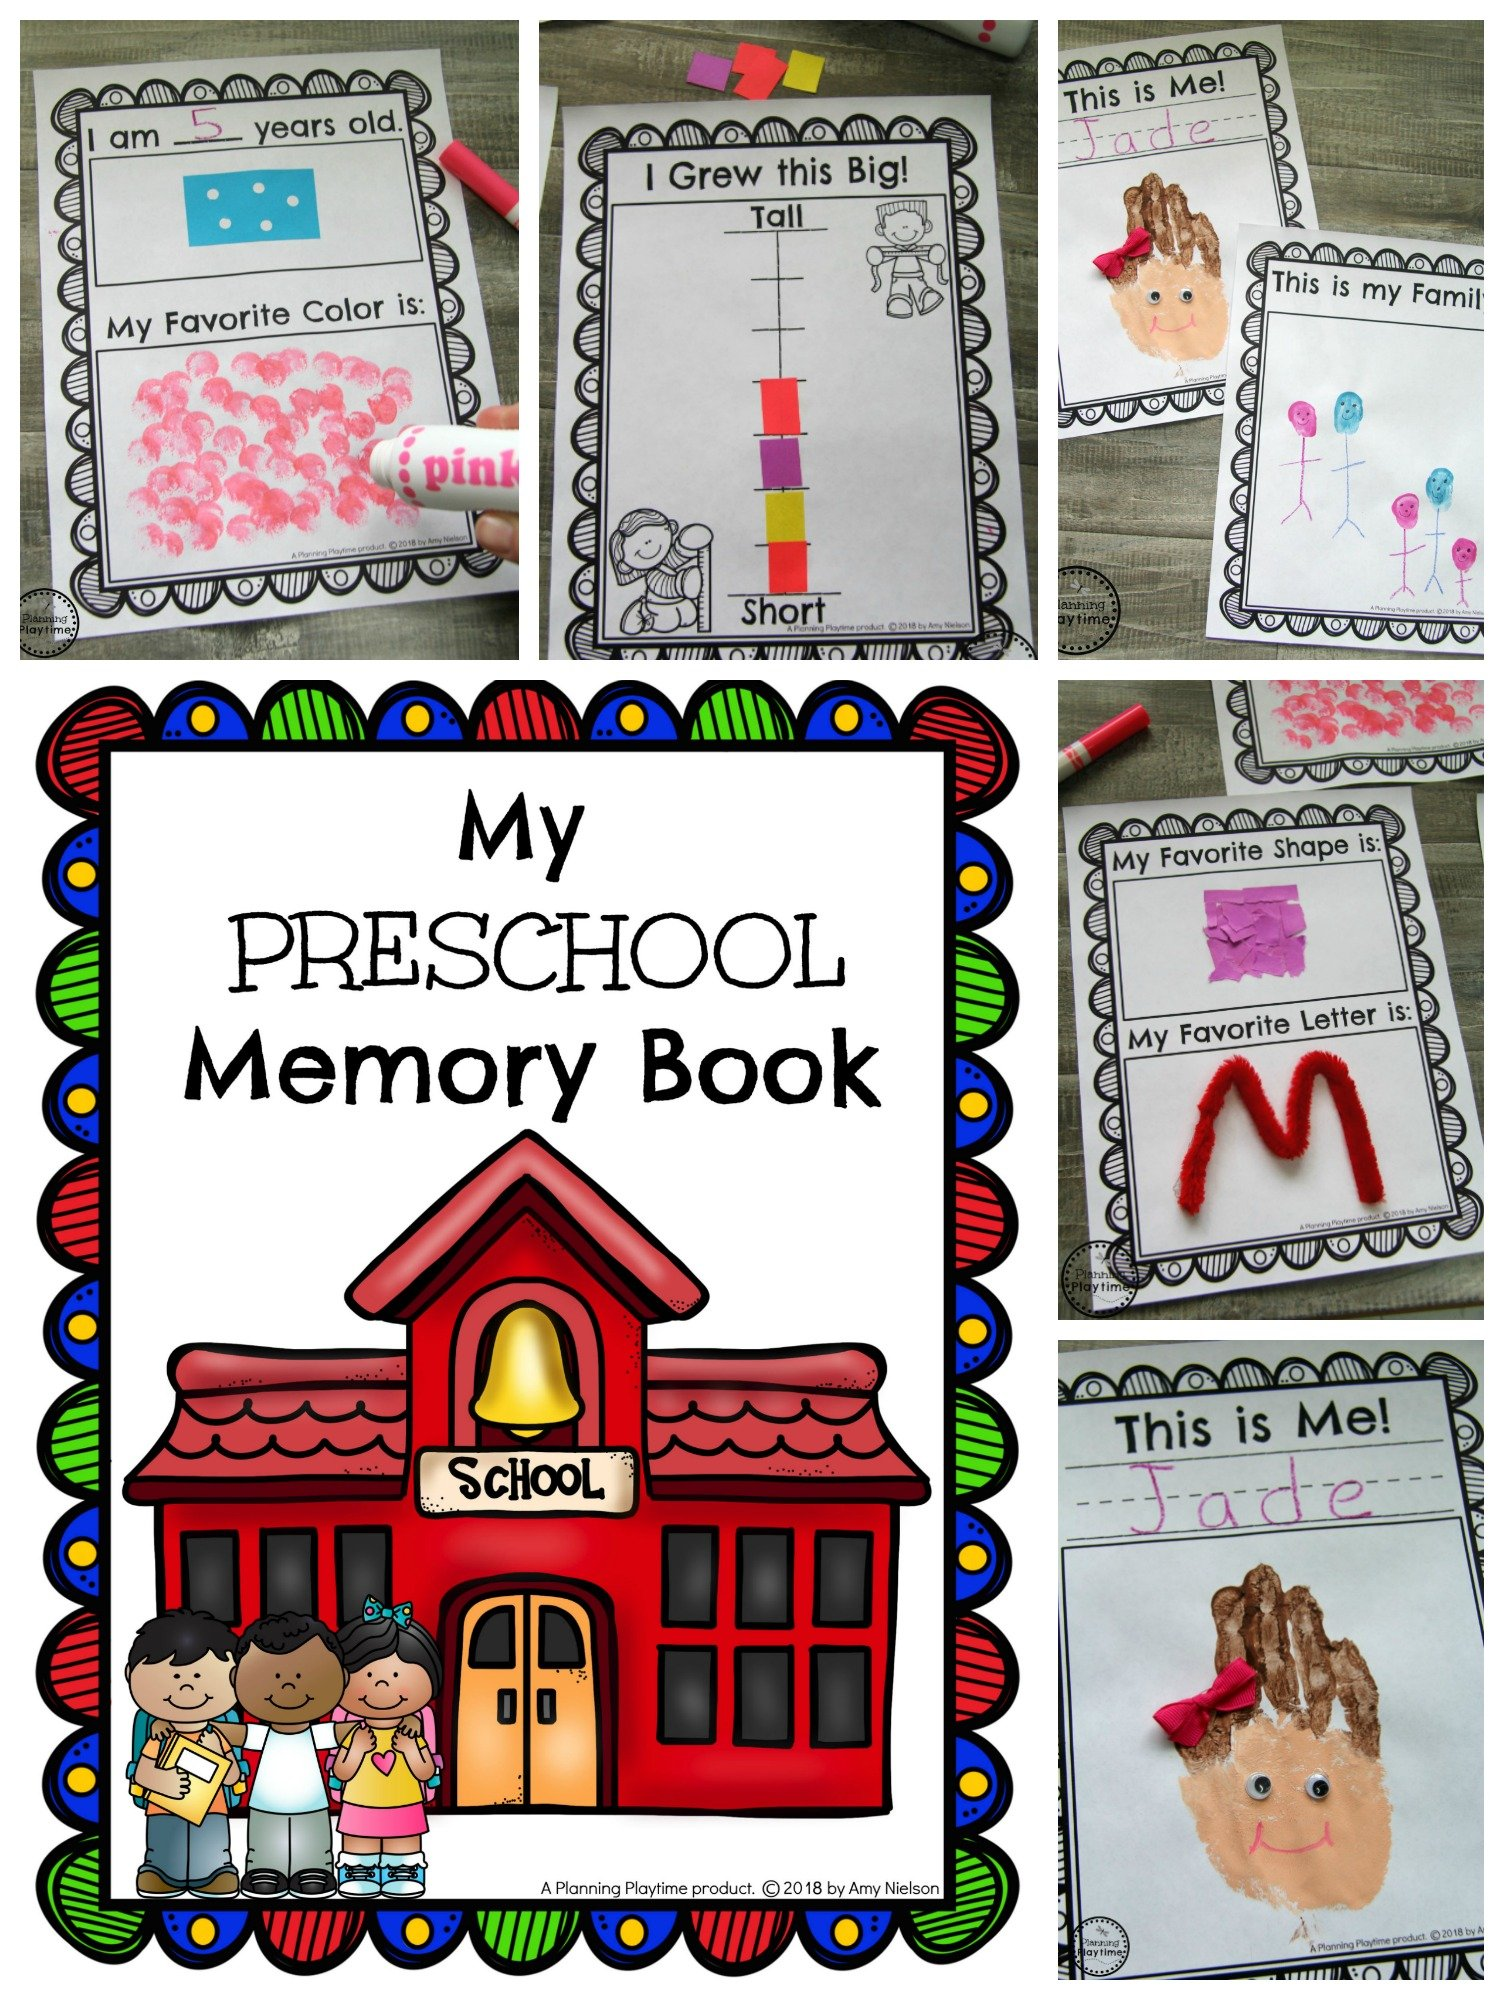 Preschool Memory Book Preview #preschool #kindergarten #memorybook